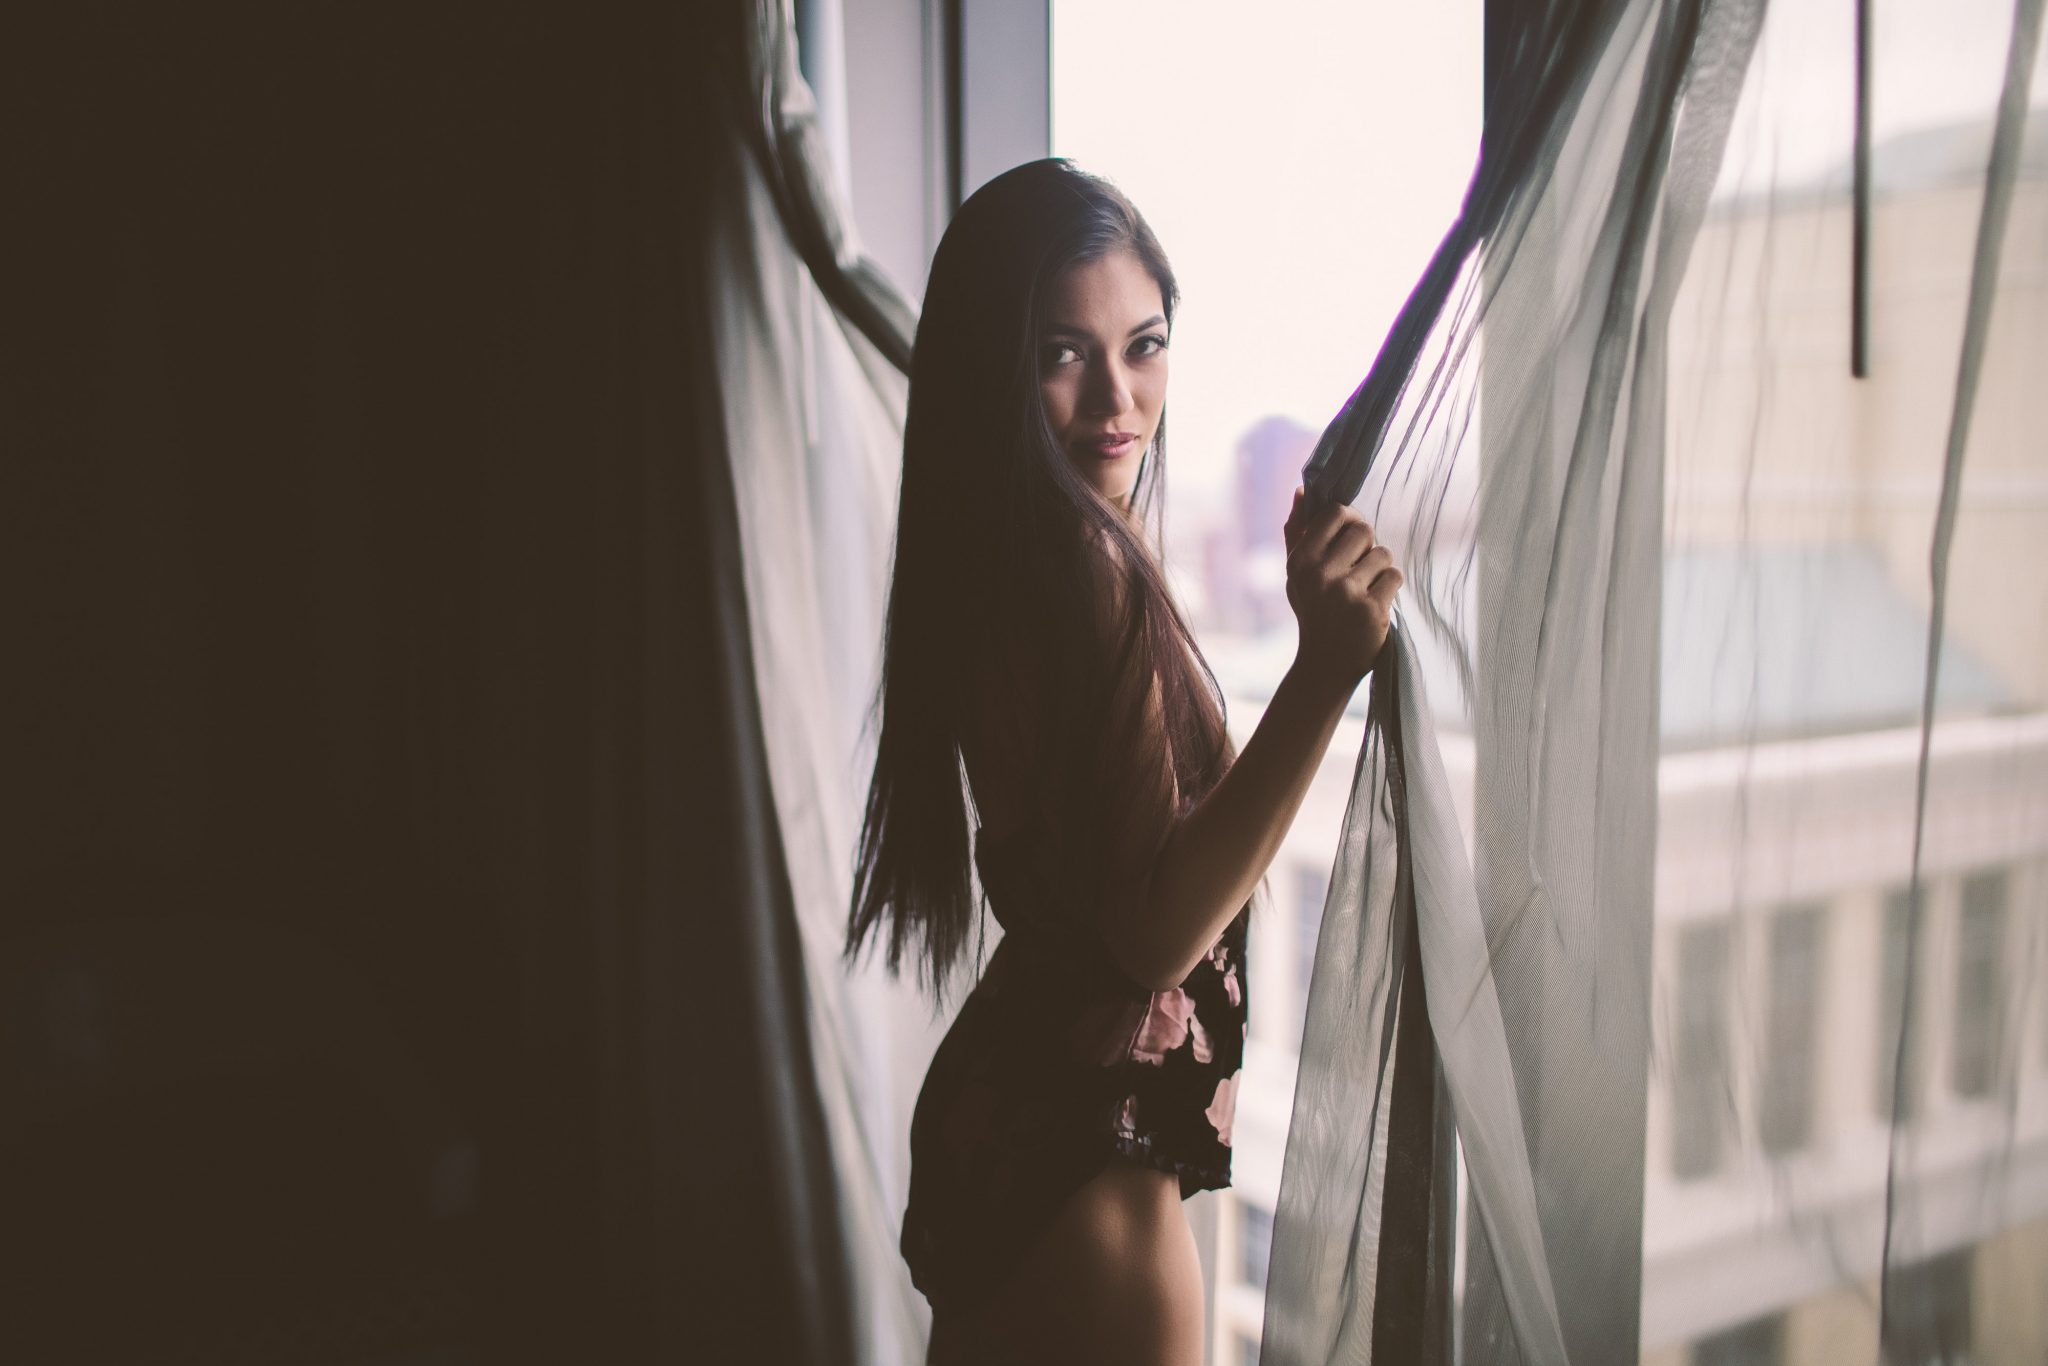 A boudoir photo shoot for Valentine's Day